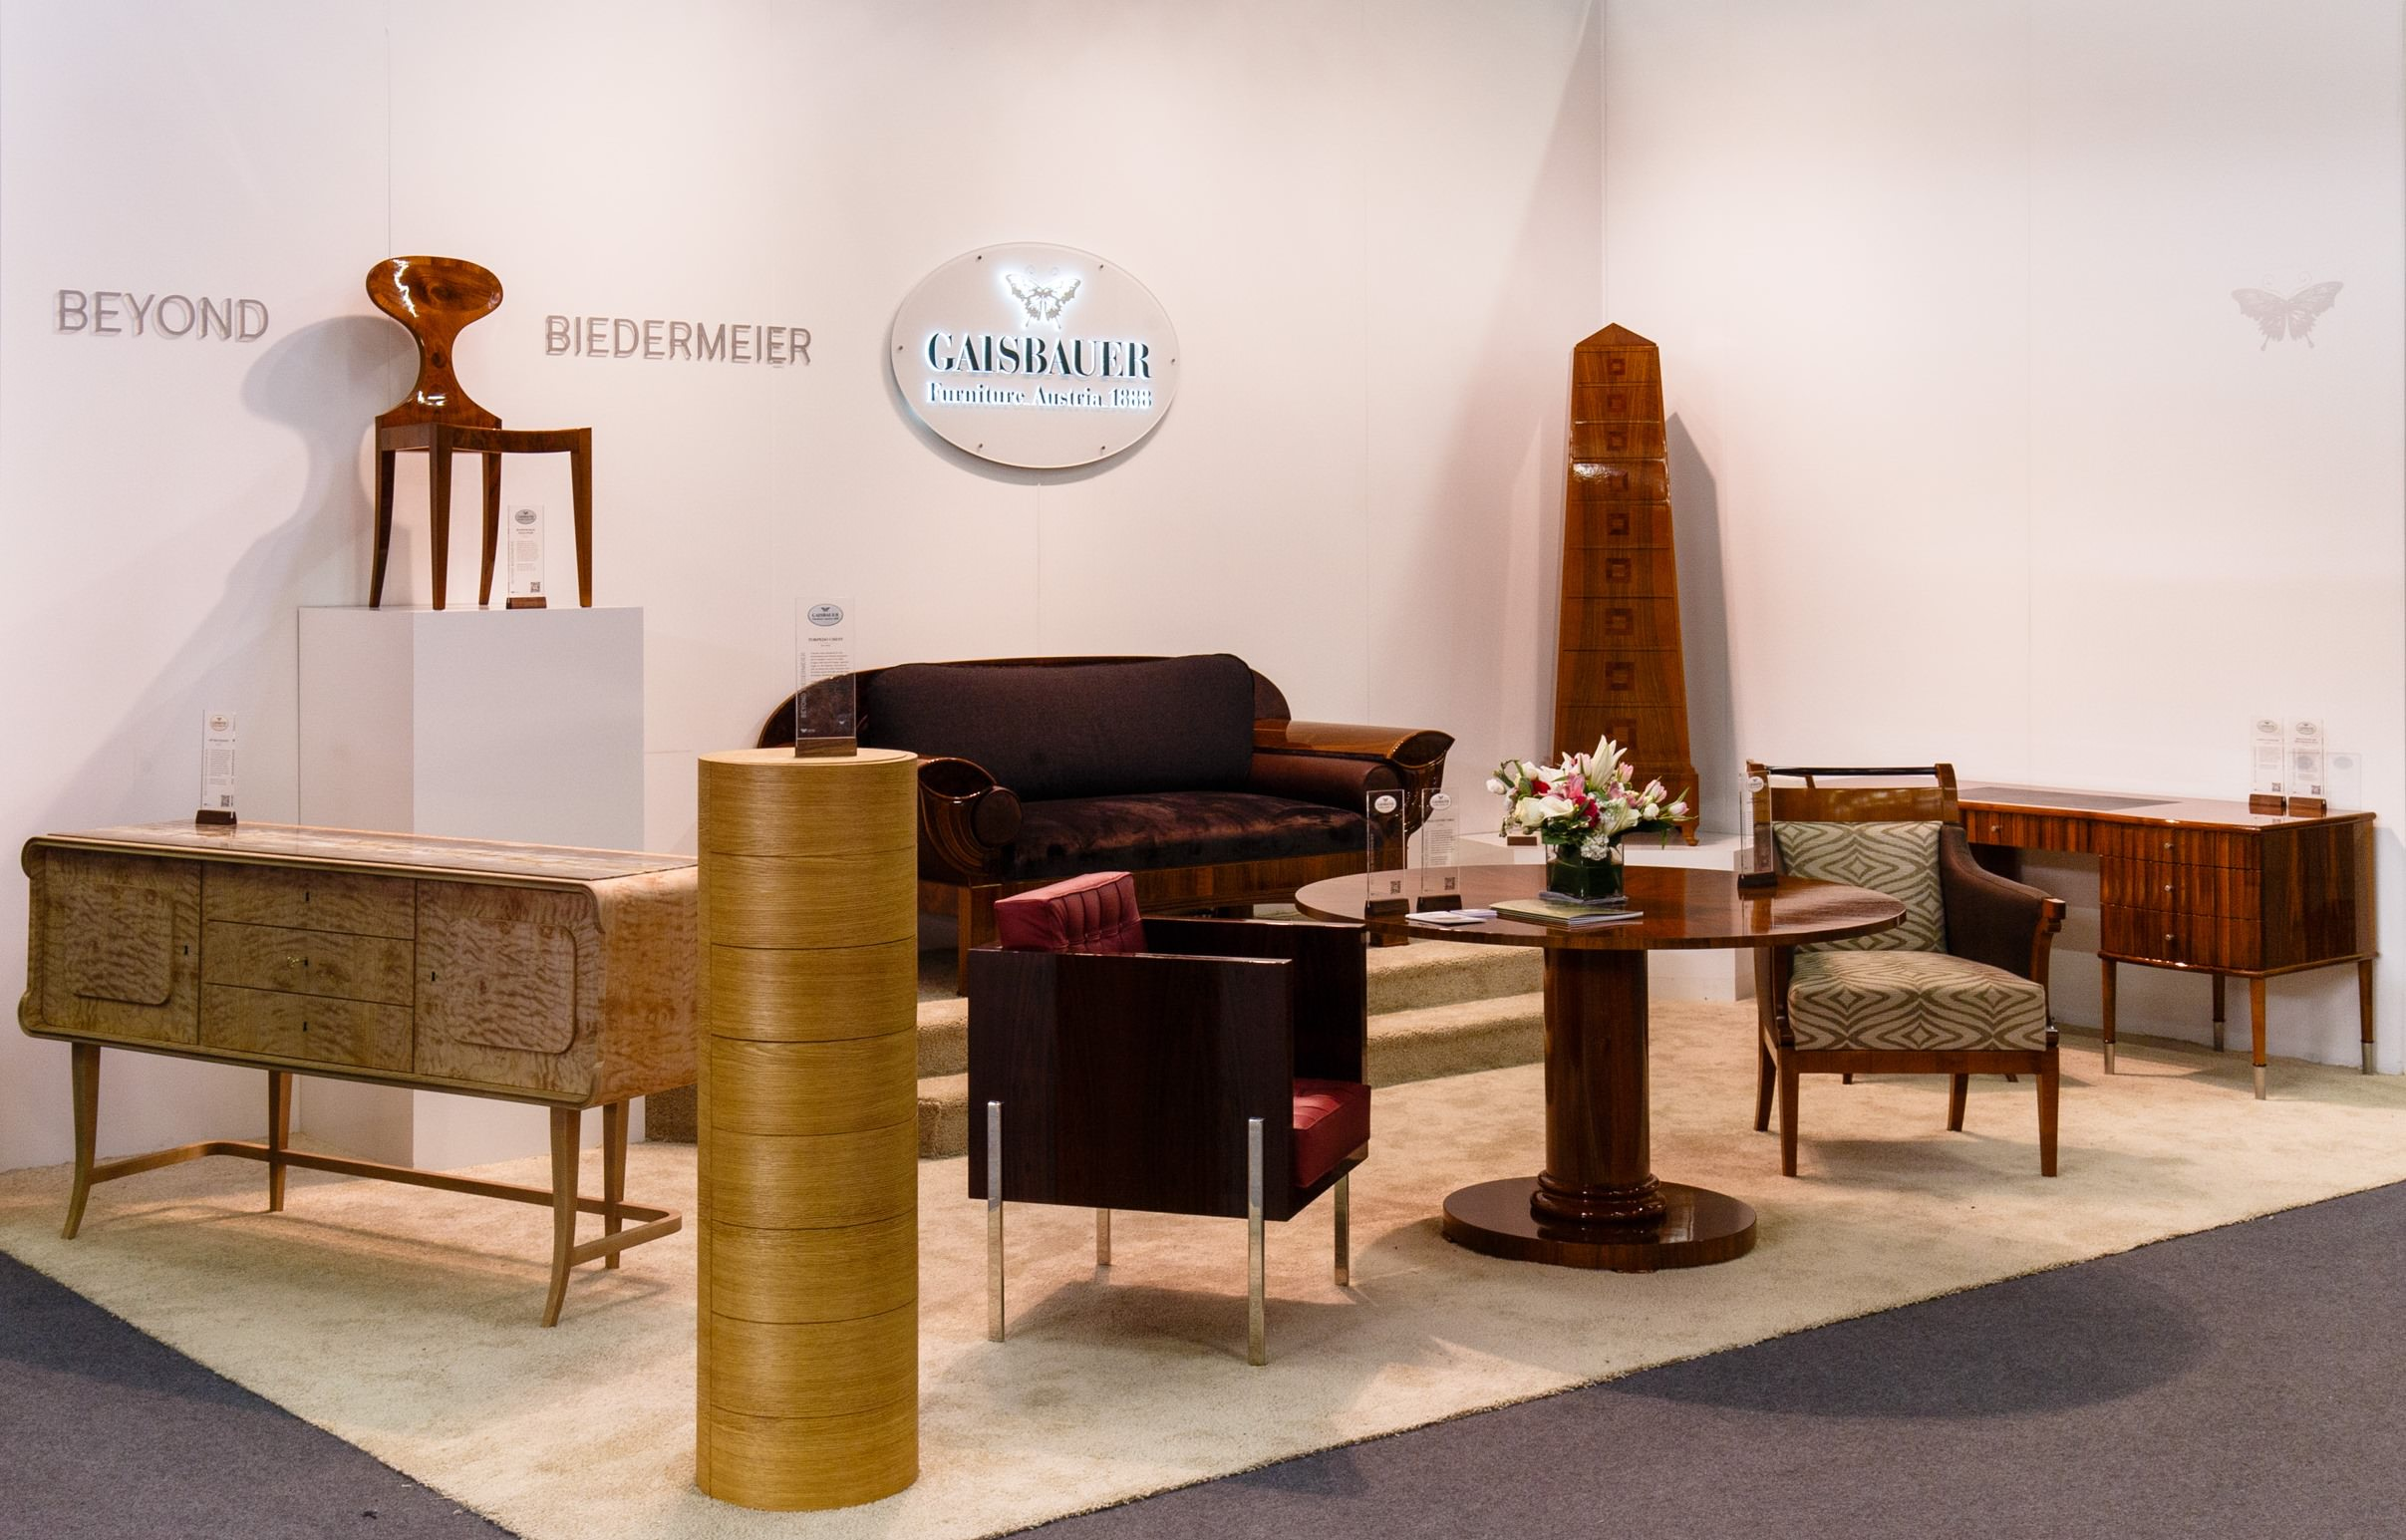 Design News: AD SHOW HIGHLIGHTS AD SHOW HIGHLIGHTS Design News: AD SHOW HIGHLIGHTS Gaisbauer Austriz Design News AD SHOW HIGHLIGHTS